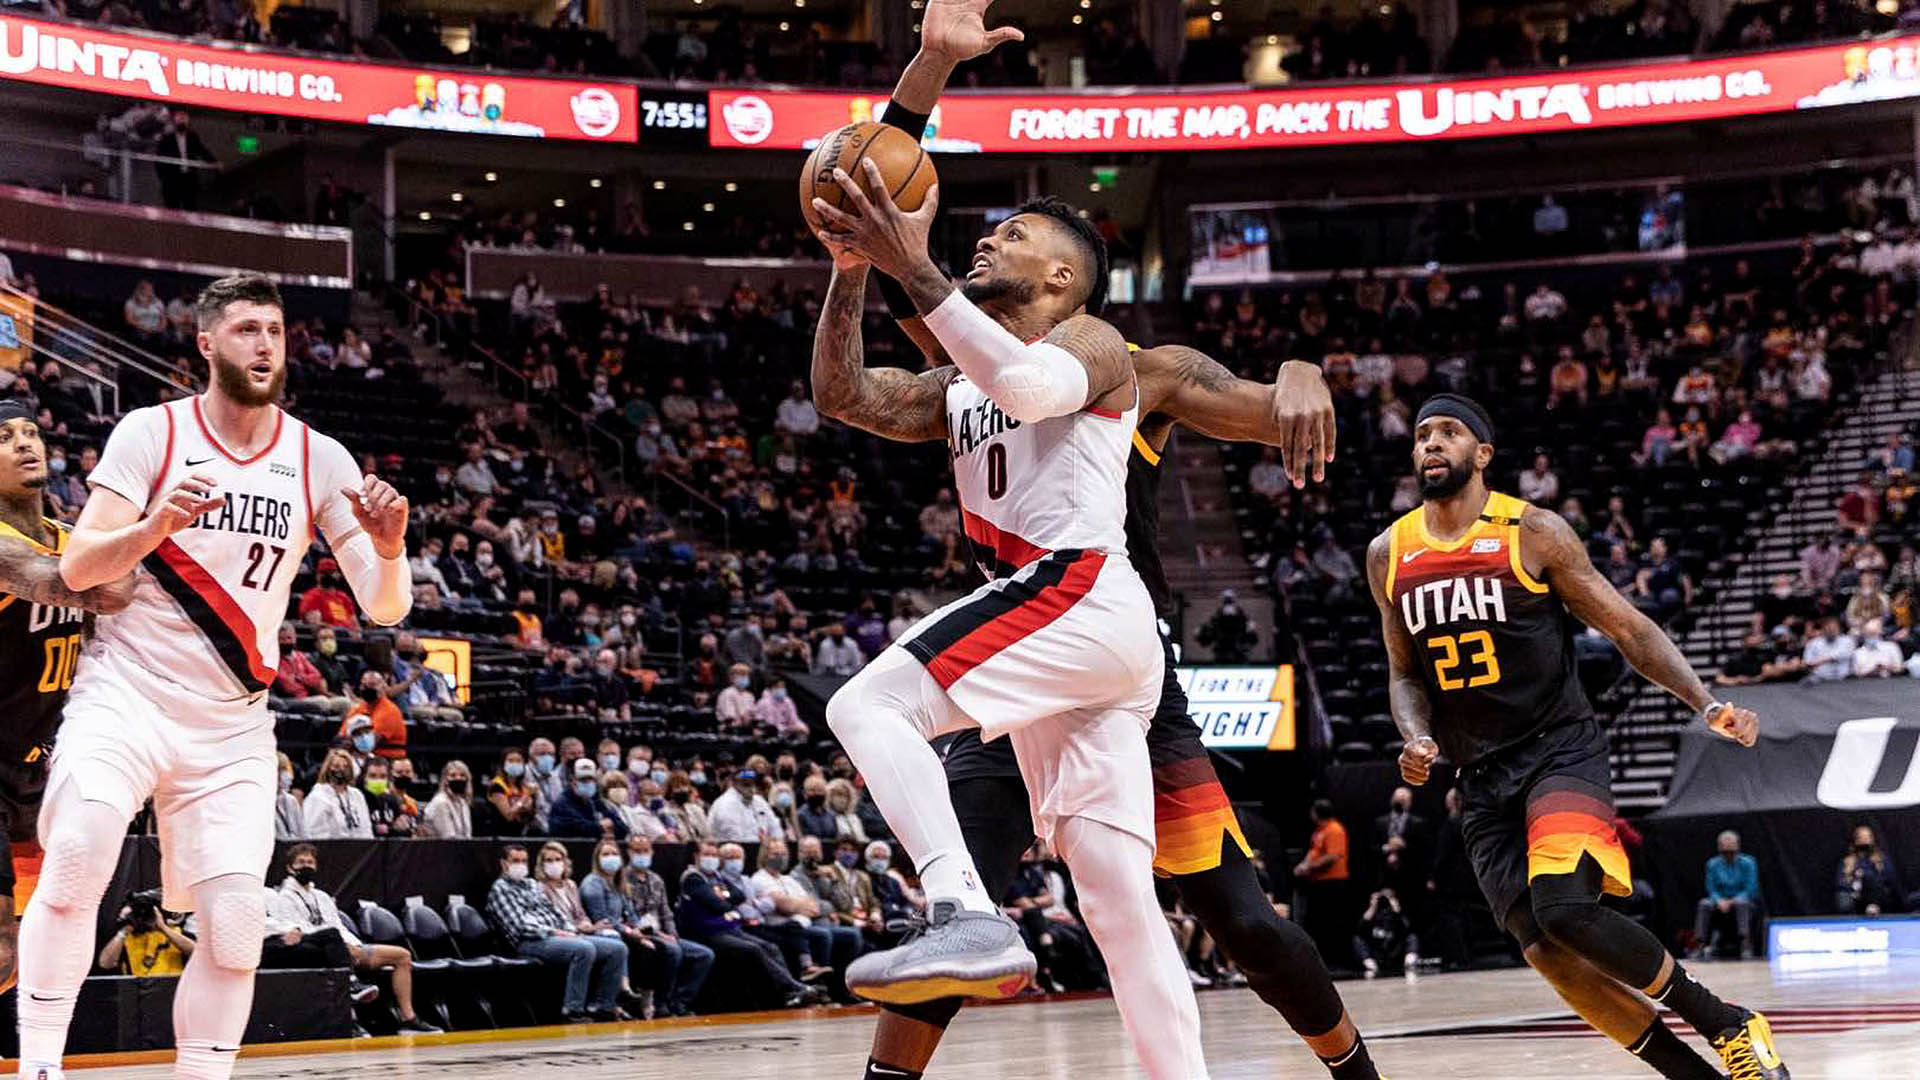 Blazers win 5th straight, tighten grip on playoff spot